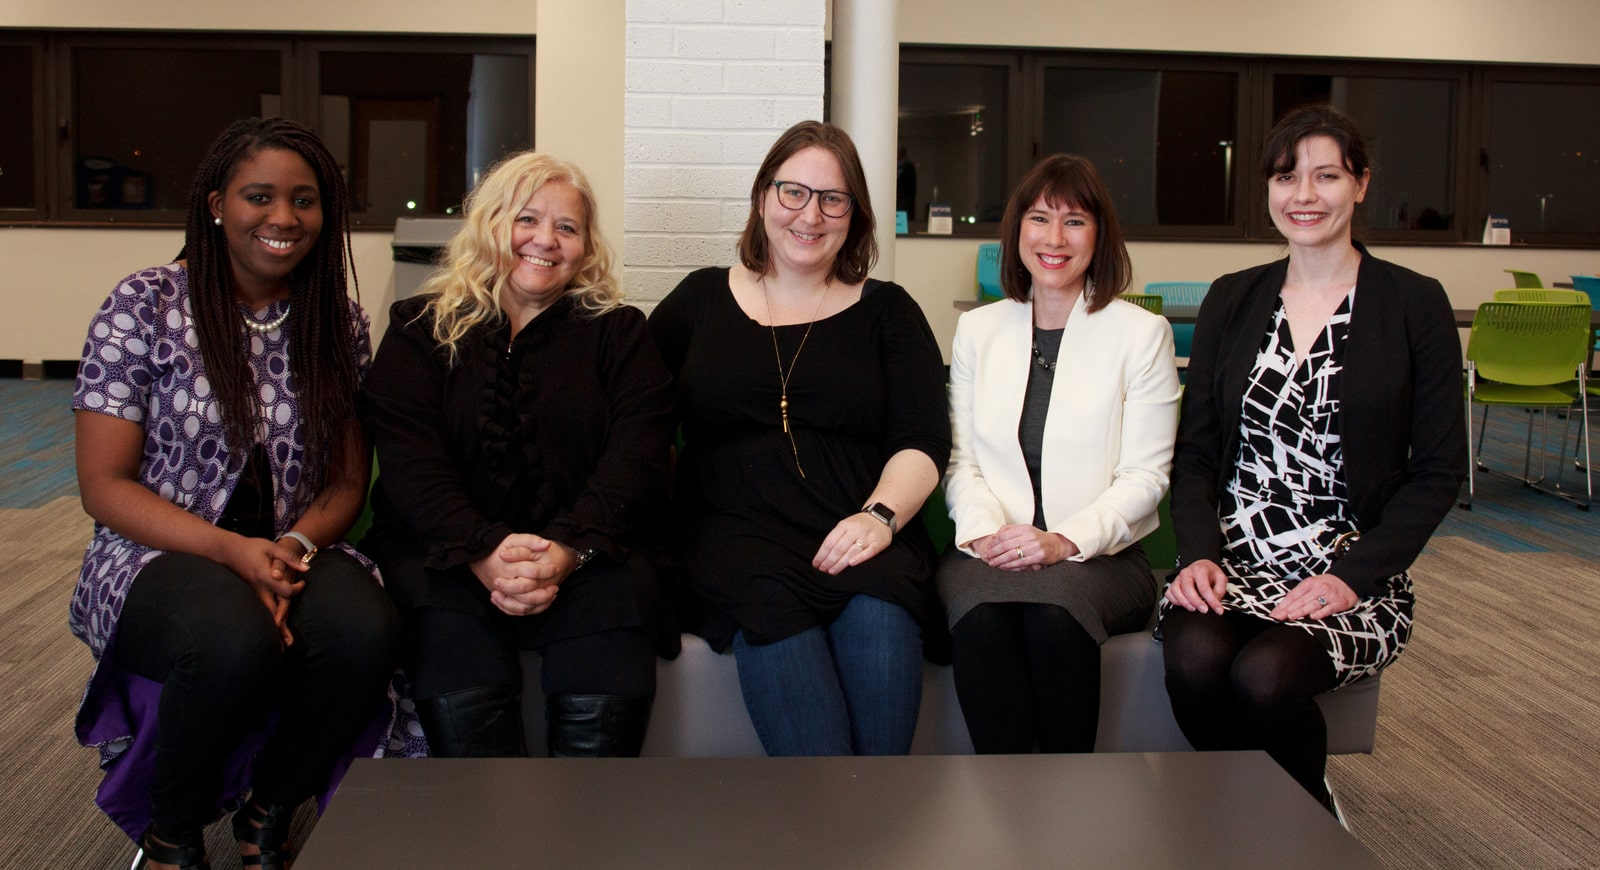 Photo of five smiling women seated in Chatham's Center for Women's Entrepreneurship